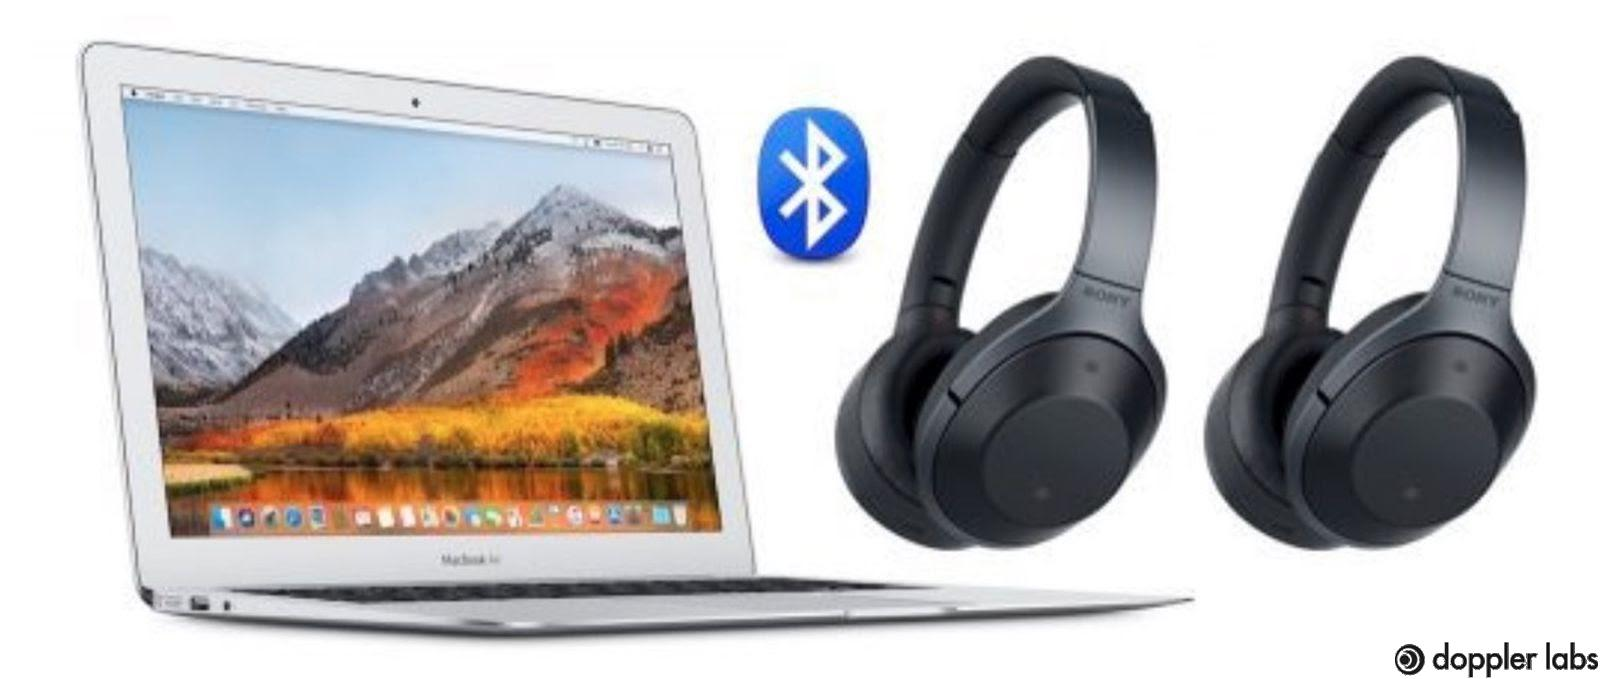 Connect using a wireless Bluetooth adapter